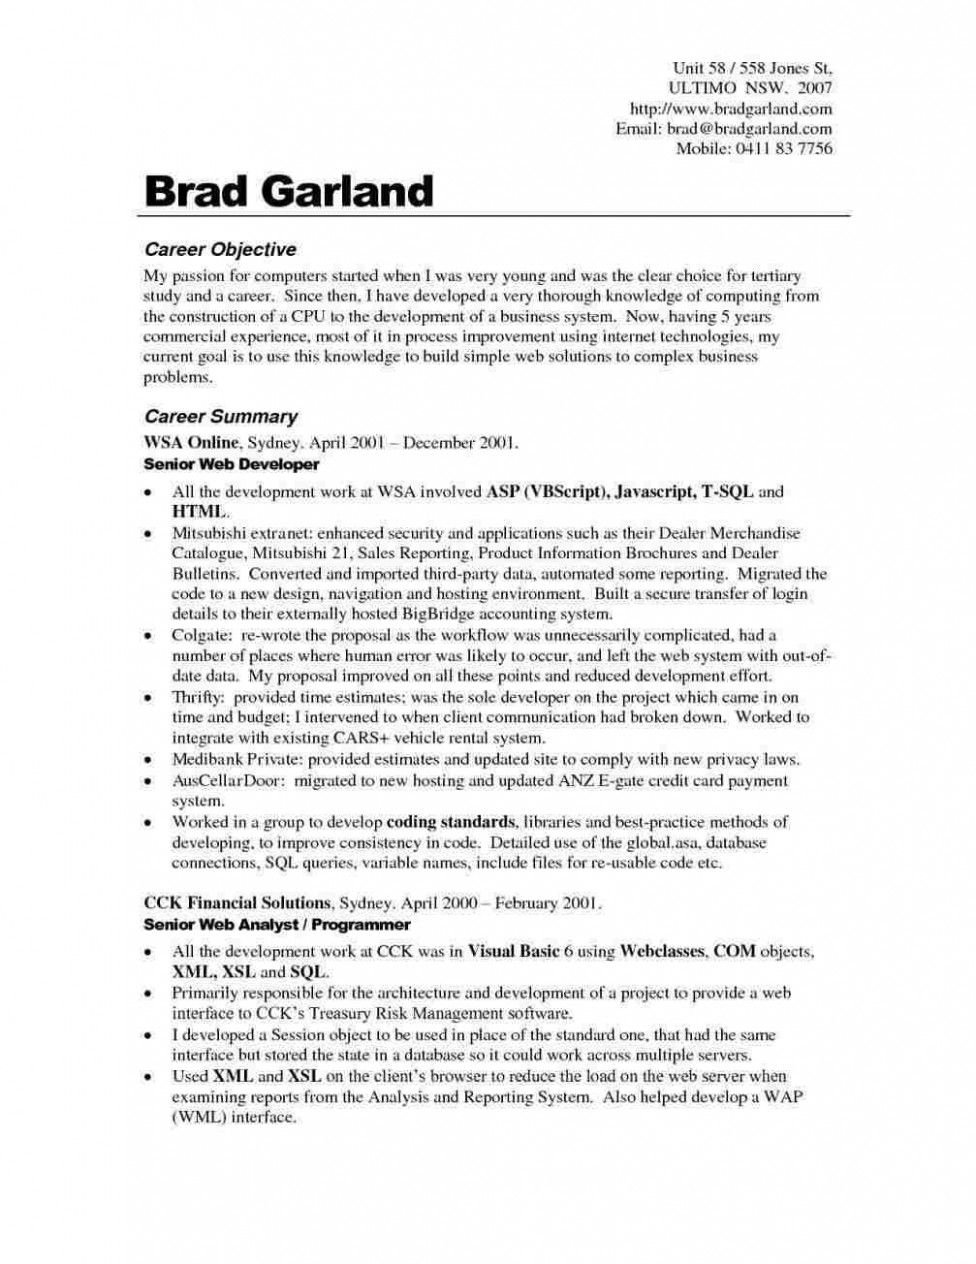 Resume Templates With Objective Statements In 2021 Resume Objective Examples Career Objectives For Resume Resume Objective Statement Examples